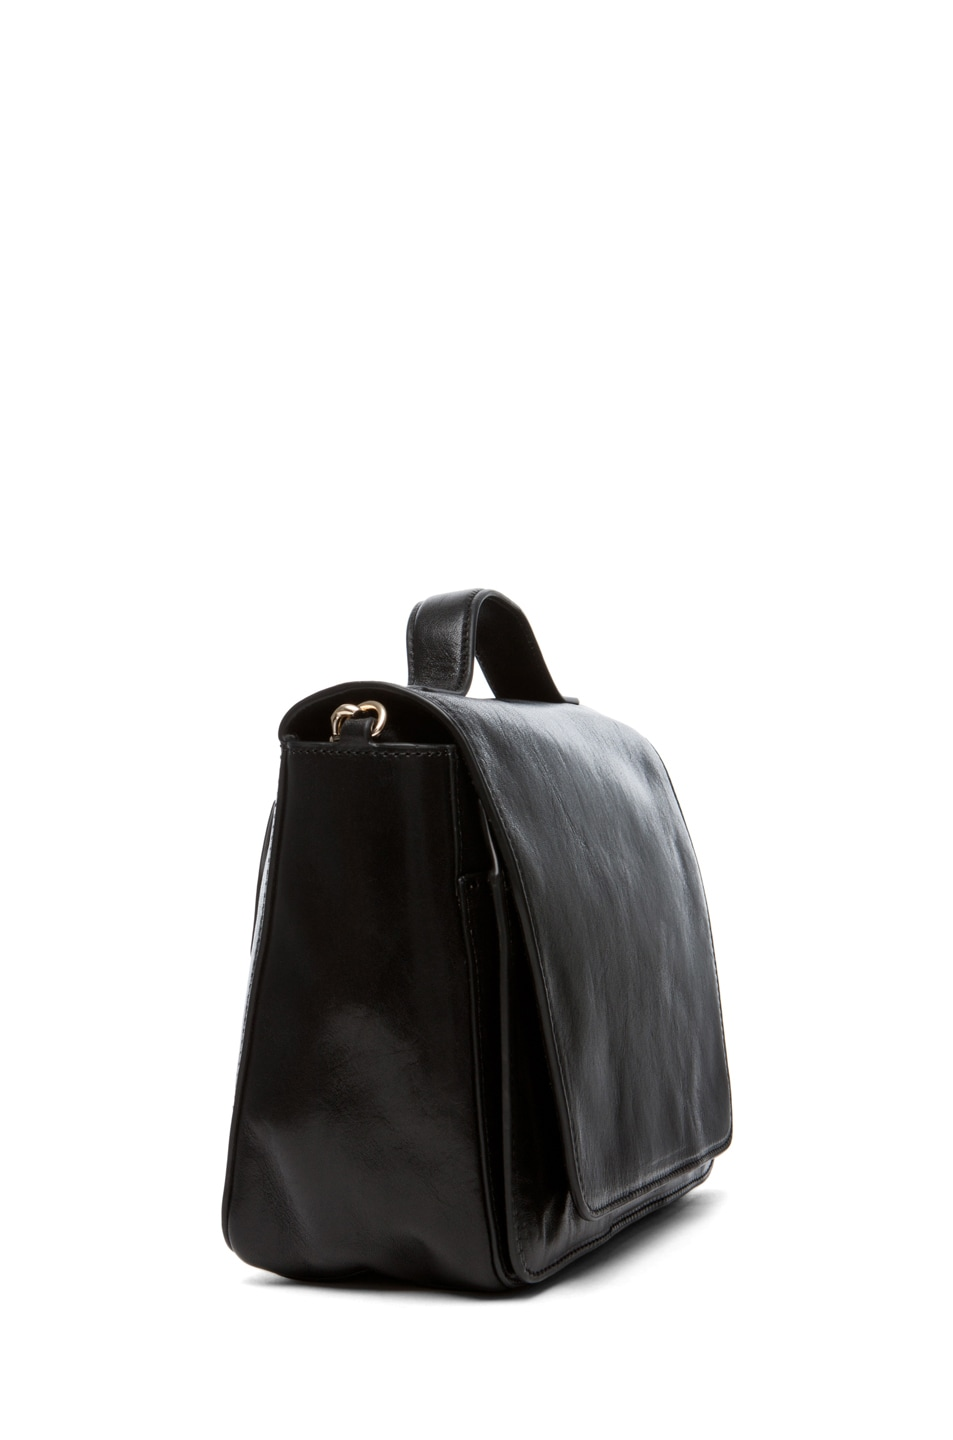 Image 3 of Theyskens' Theory Waren Ang Leather Bag with Chain in Black